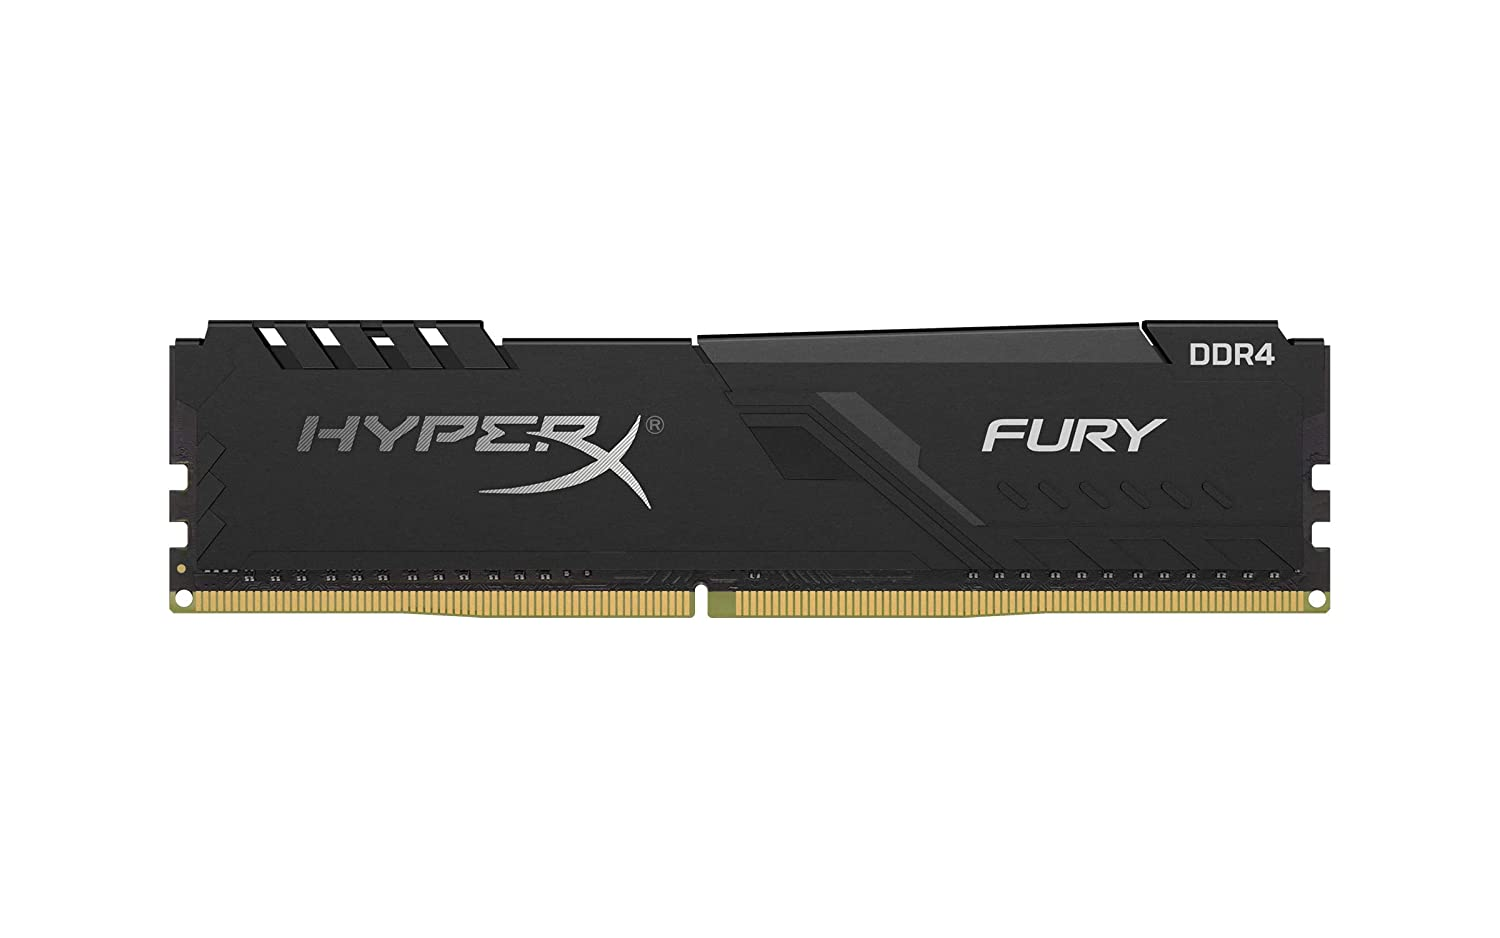 HyperX Fury 8GB 3200MHz DDR4